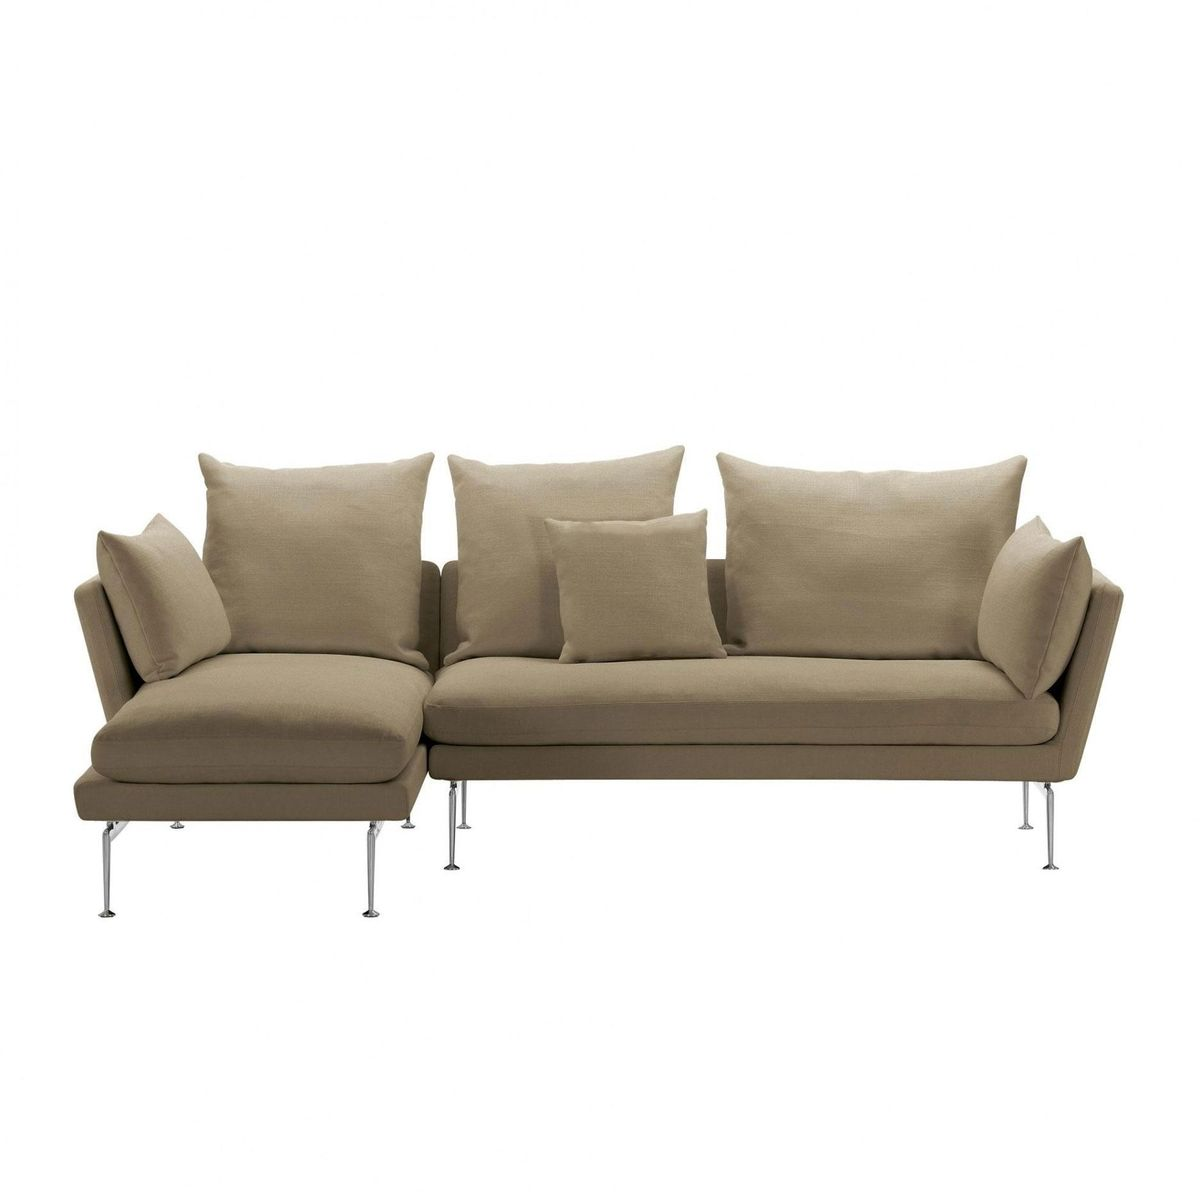 Suita citterio sofa with chaise longue vitra for Sofa chaise longue